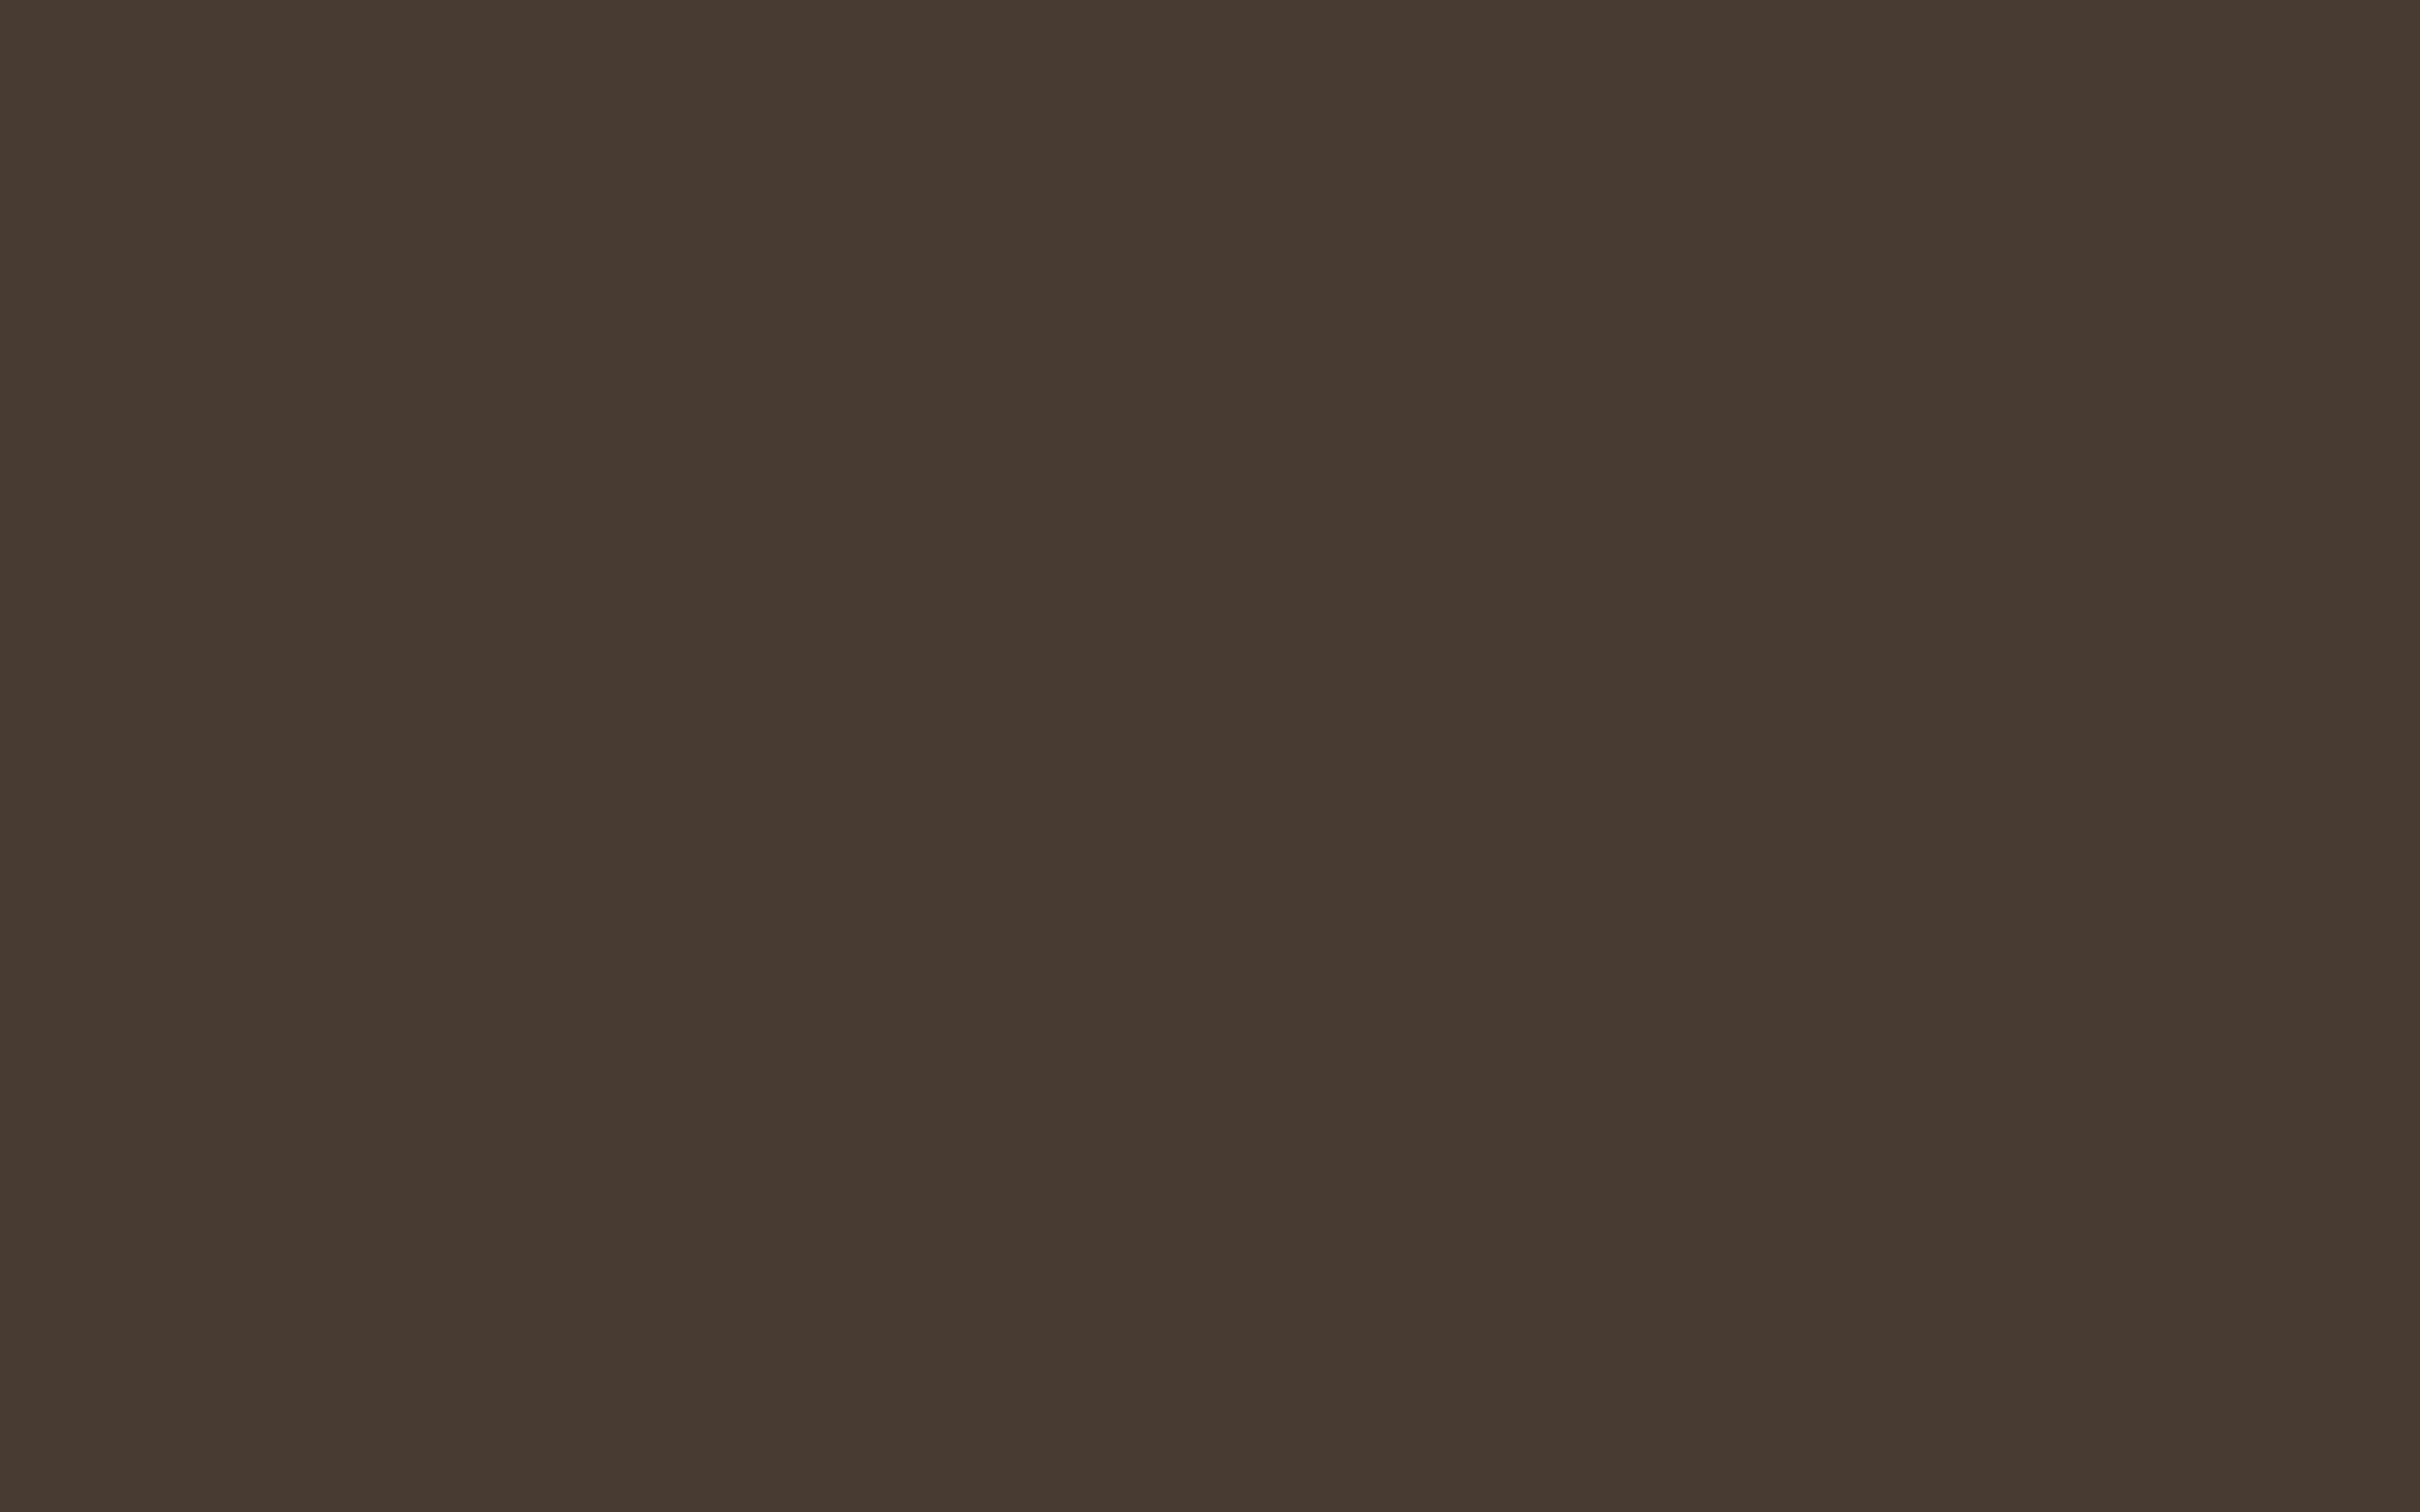 2560x1600 Taupe Solid Color Background